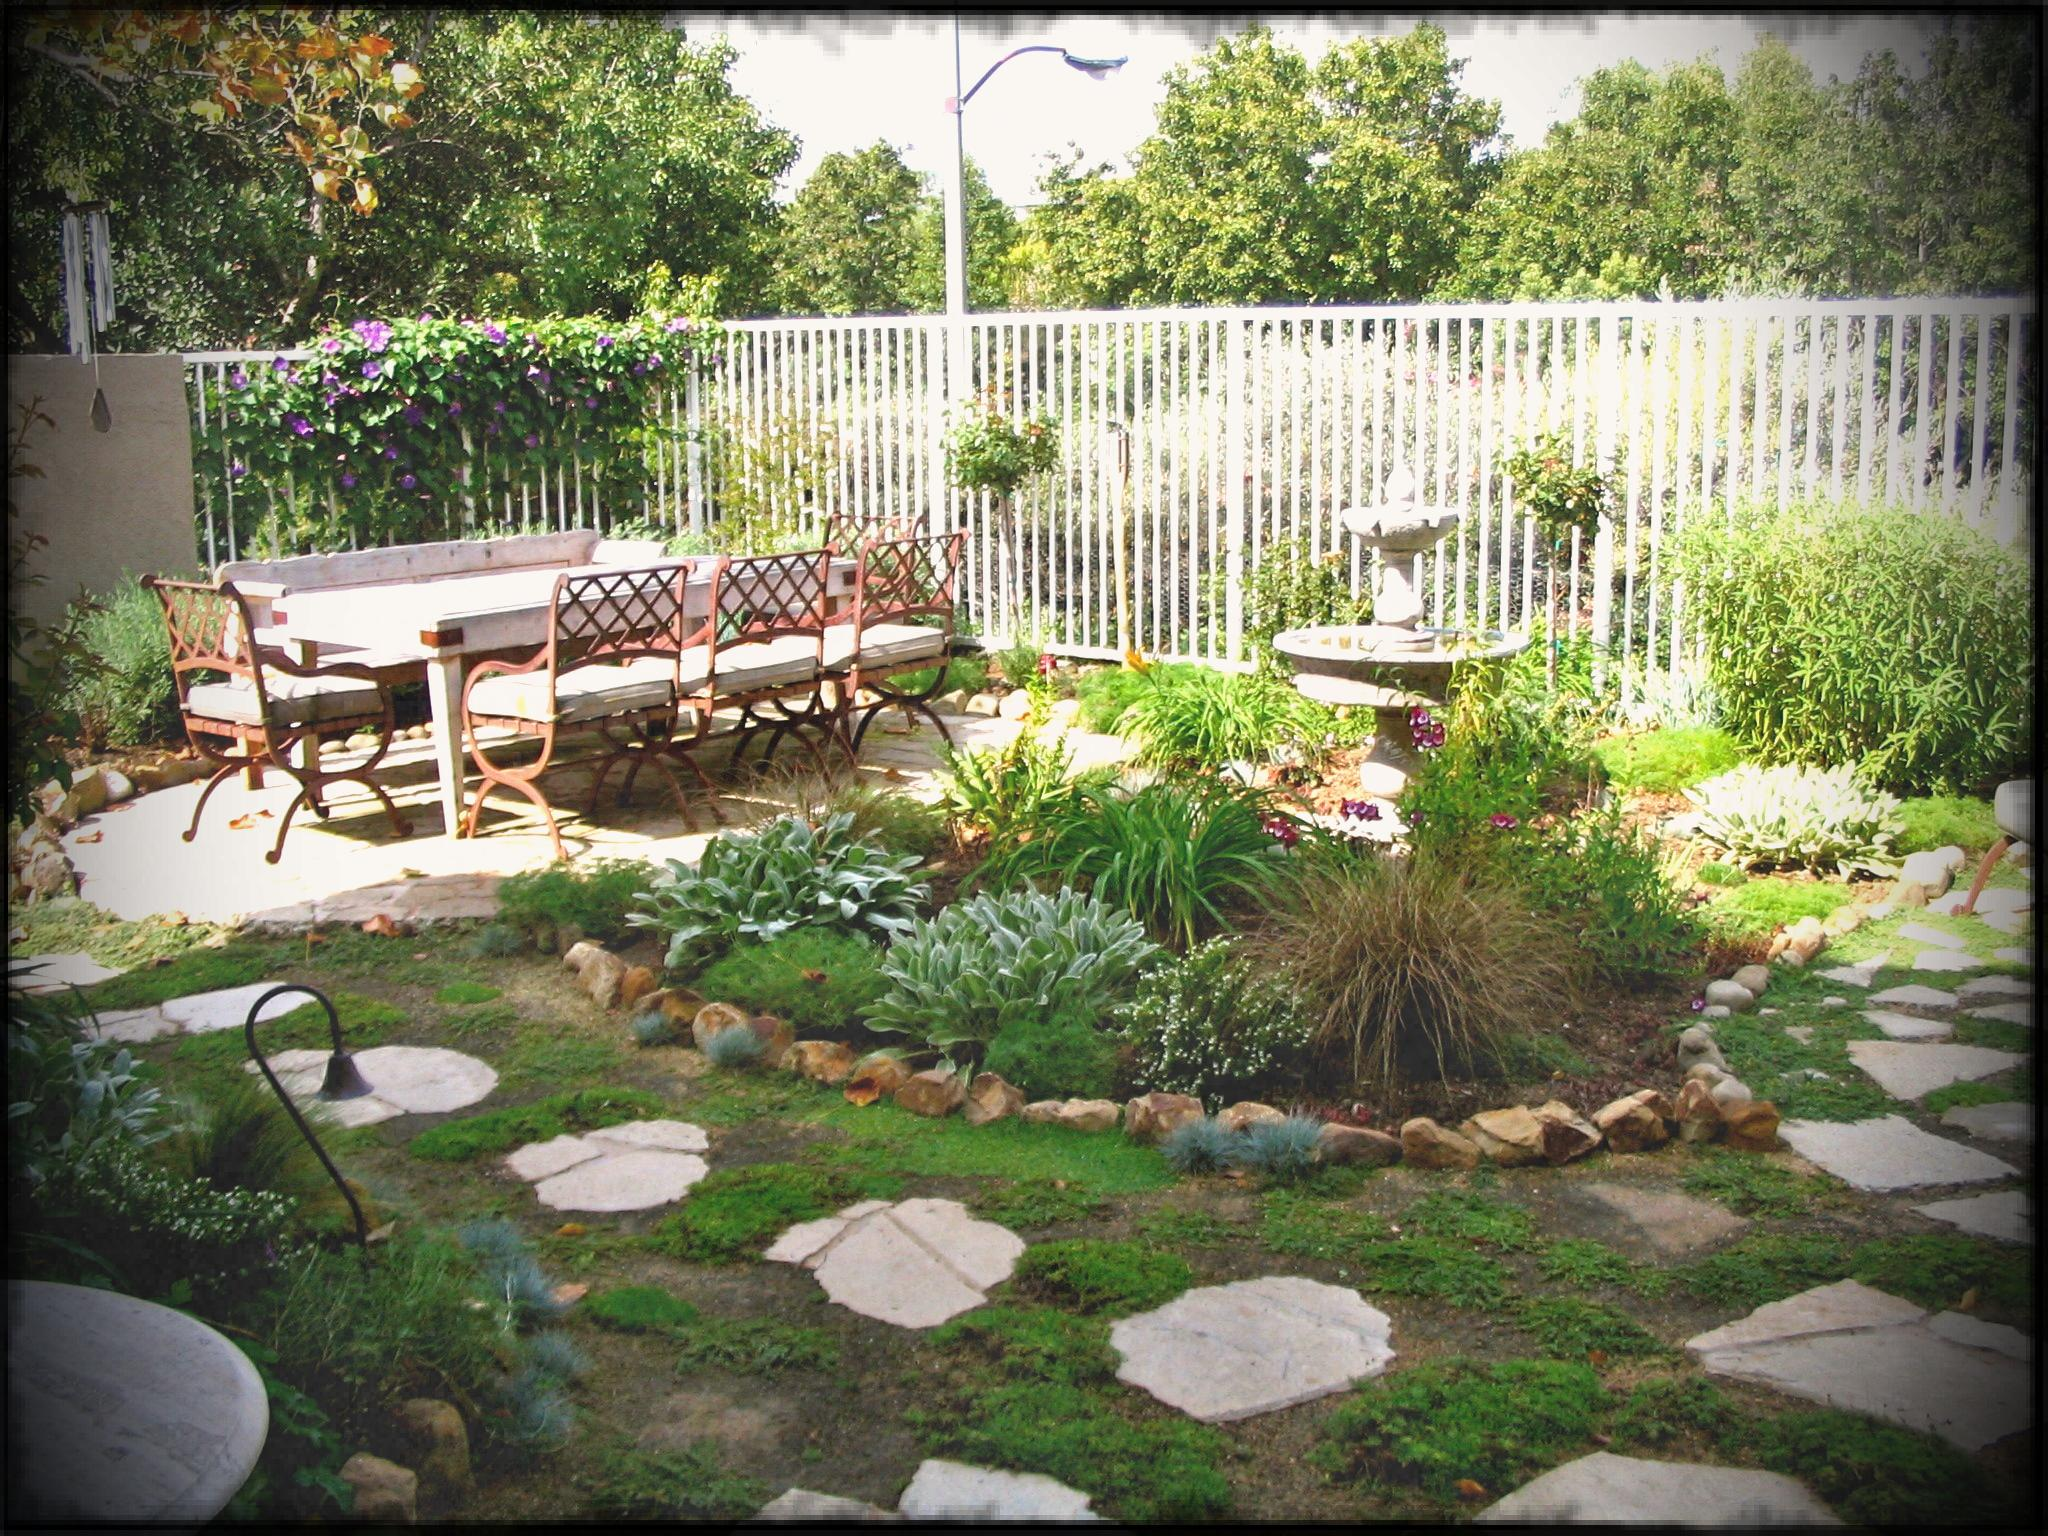 Landscaping Garden Design Ideas for a Small Yard - Ruthie ...